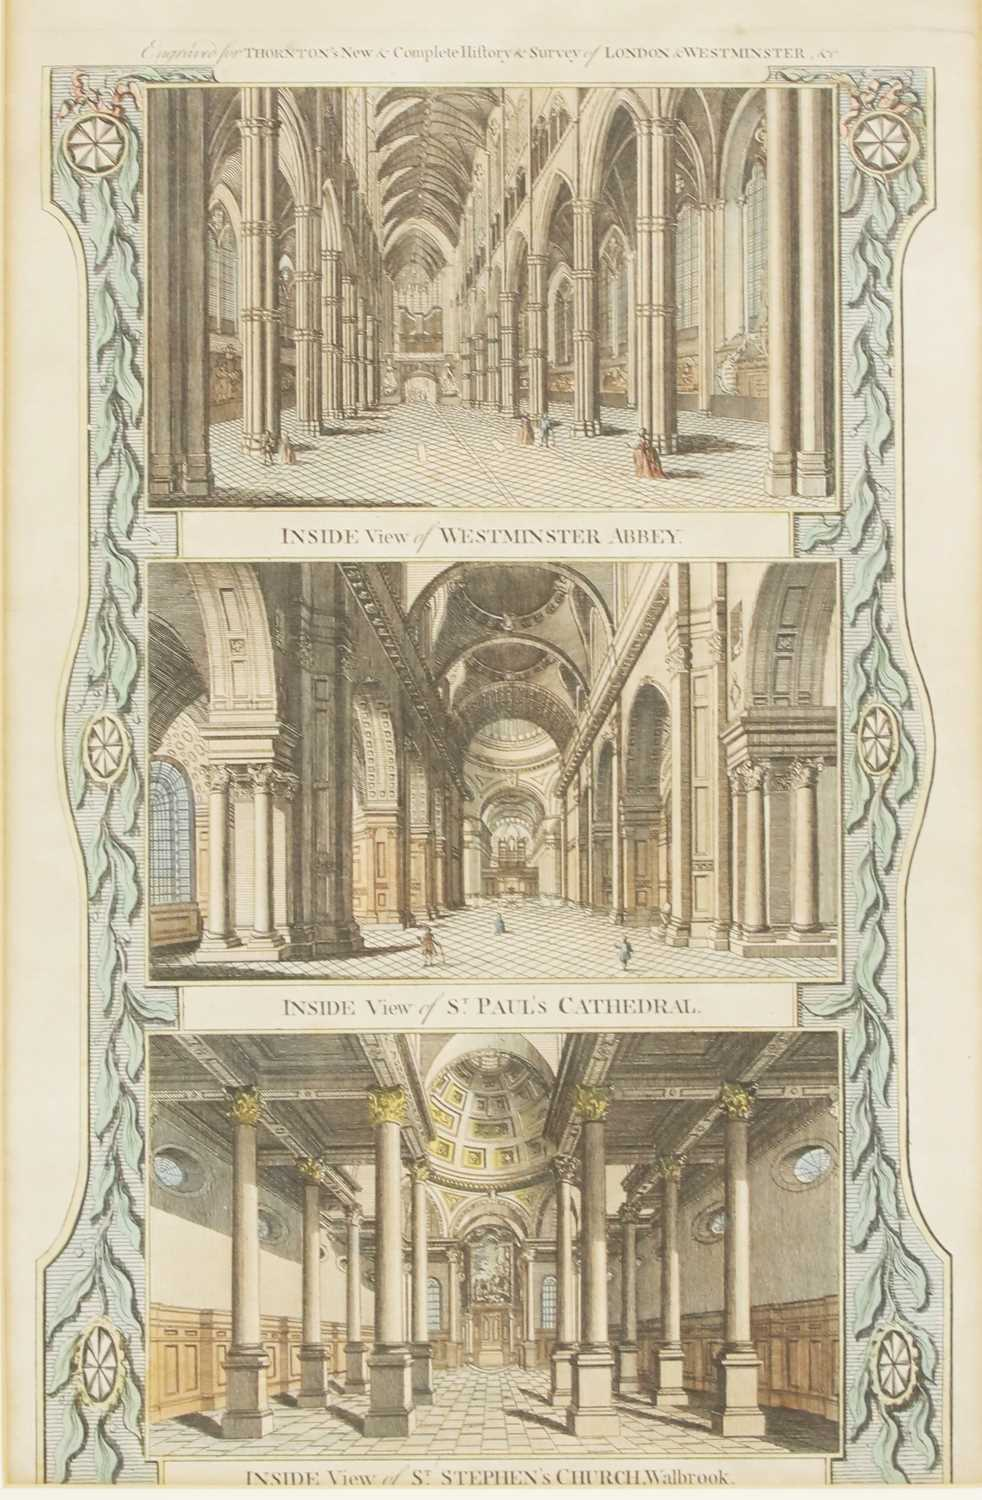 THORNTON'S 'NEW HISTORY & SURVEY OF LONDON AND WESTMINSTER' - Image 3 of 14